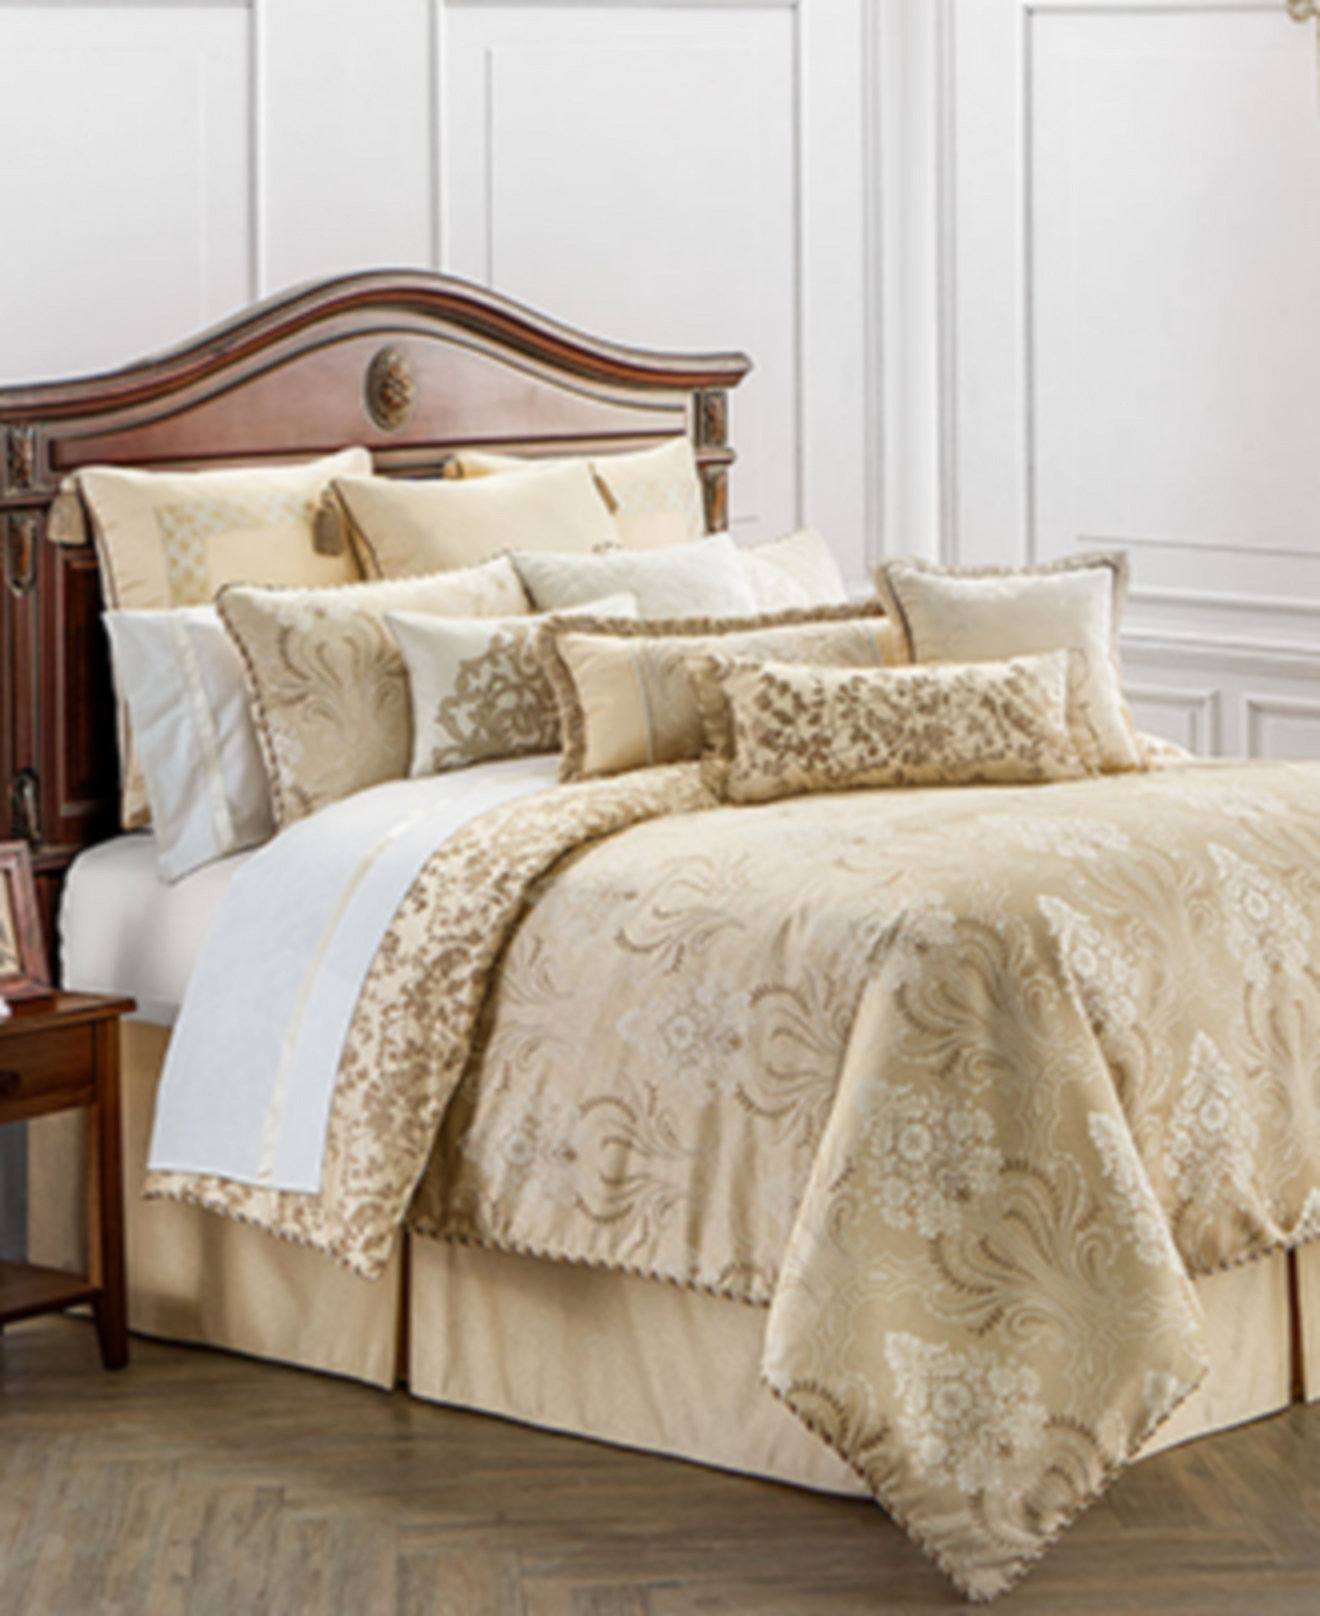 Bedding sets for women - Waterford Copeland Comforter Sets